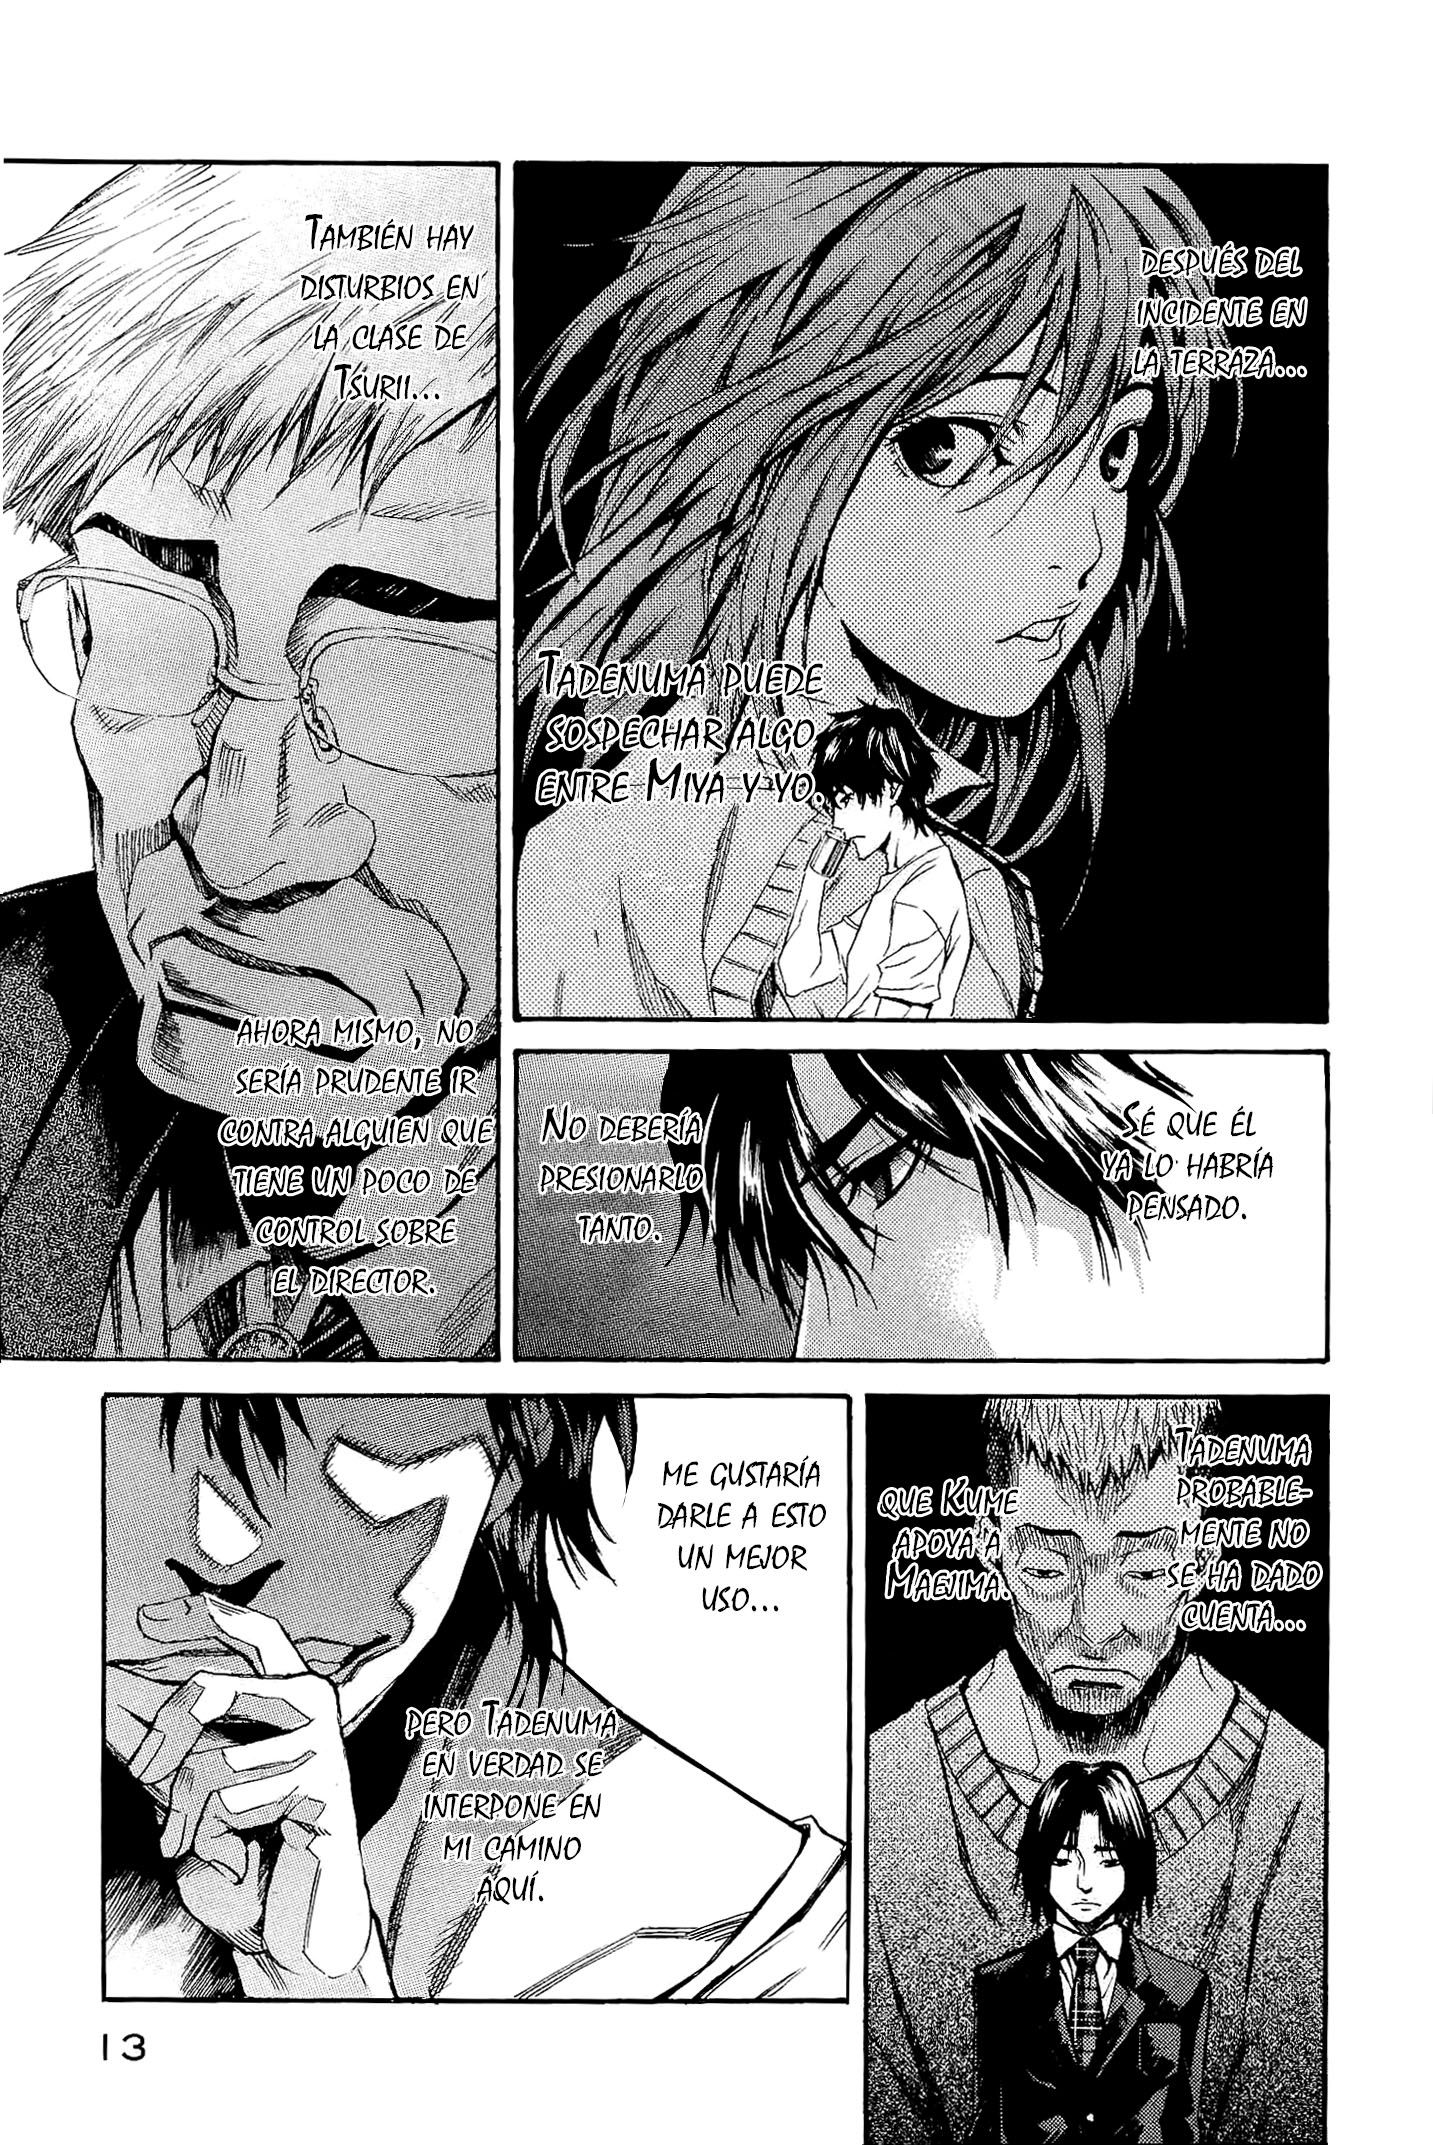 http://c5.ninemanga.com/es_manga/3/19523/468638/75d0783f617820ce1a5a1389749e2dad.jpg Page 18